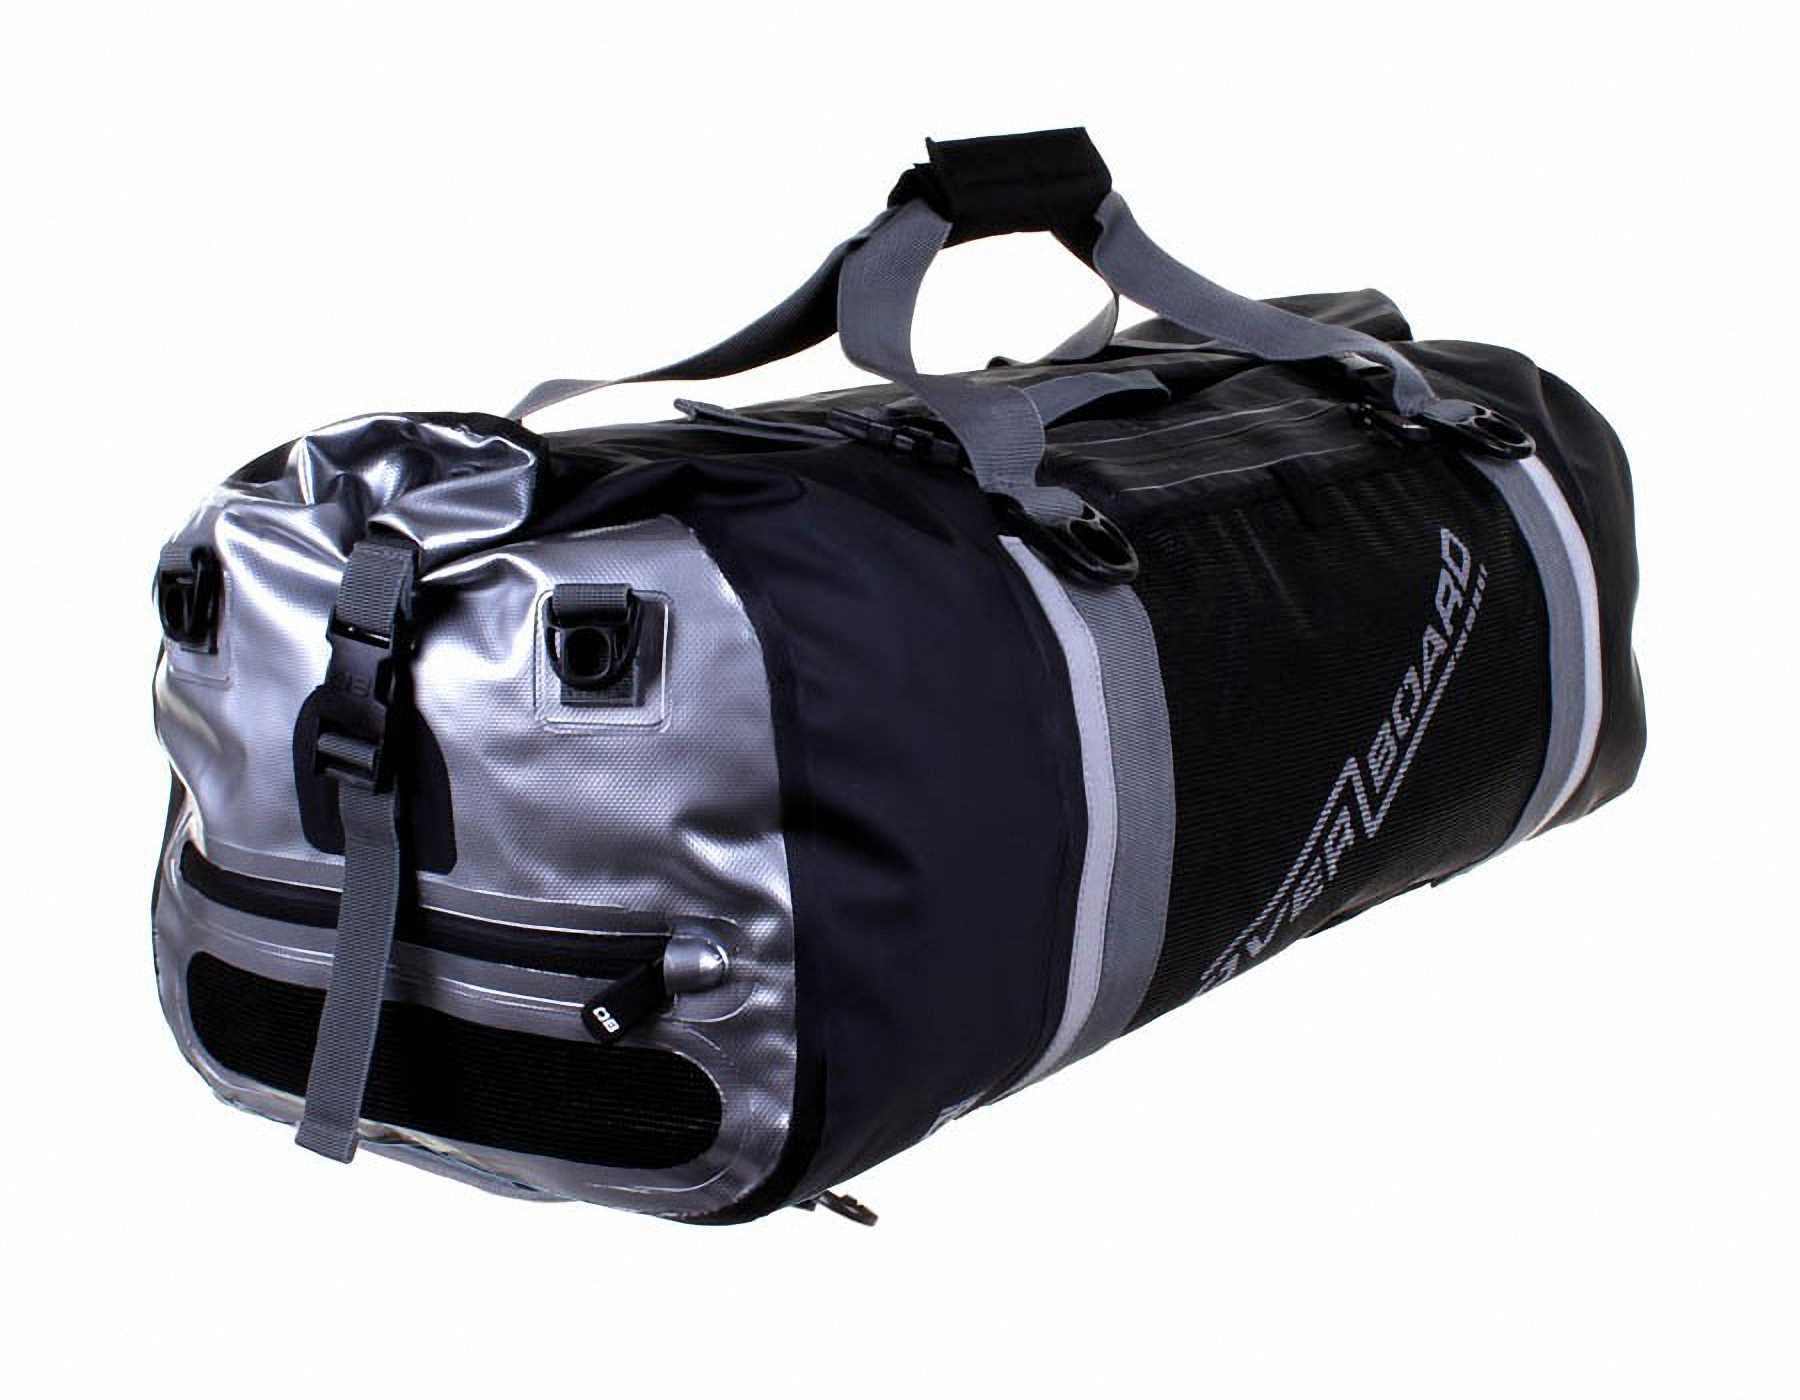 Водонепроницаемая сумка OverBoard OB1154BLK - Pro-Sports Waterproof Duffel Bag - 60 литров.  Фото 3